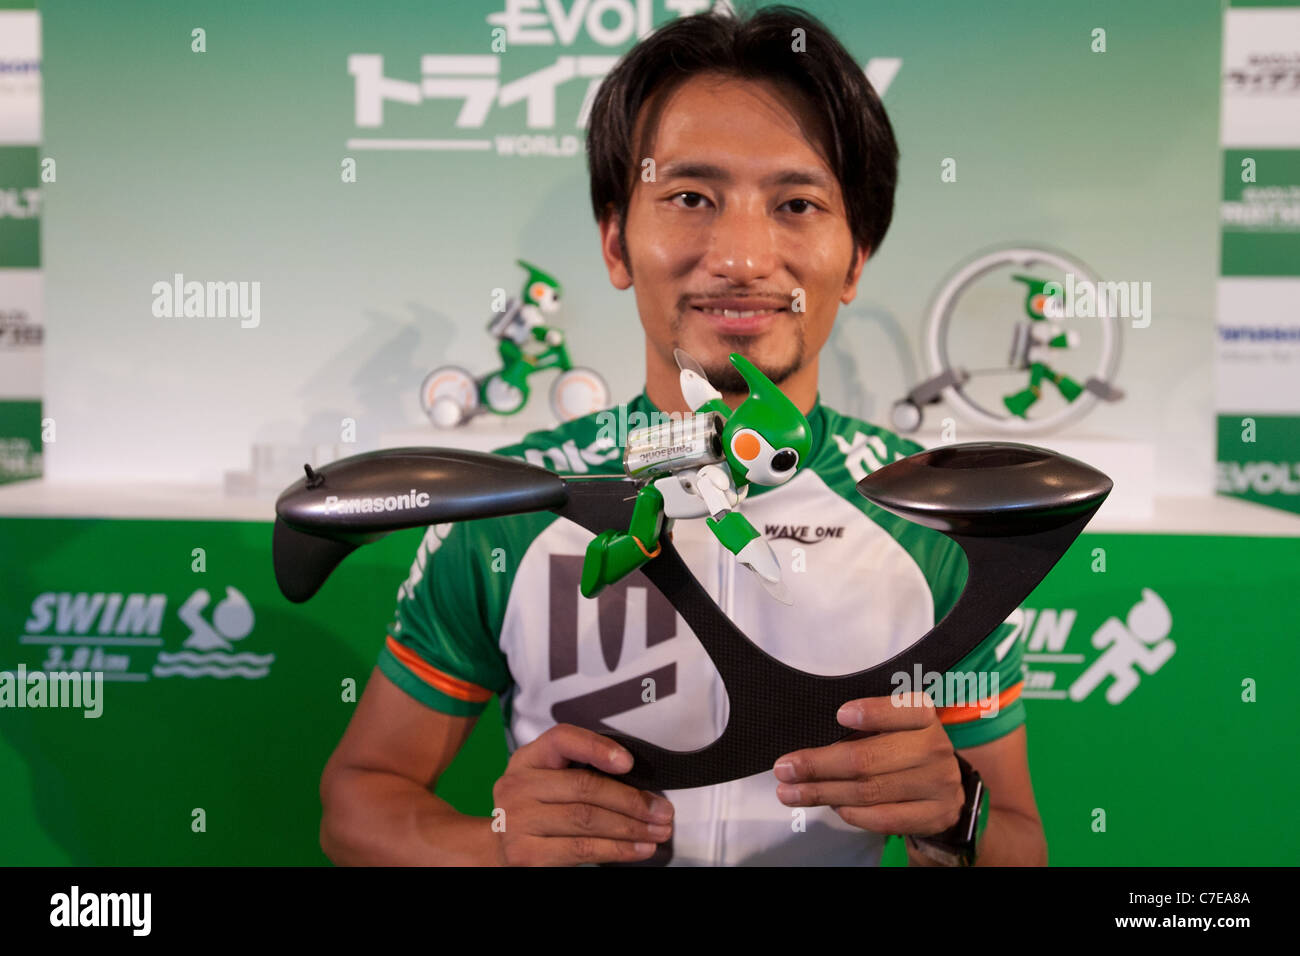 Tomotaka Takahashi poses for a photograph as he holds up the new swim robot during the Panasonic EVOLTA Challenge - Stock Image